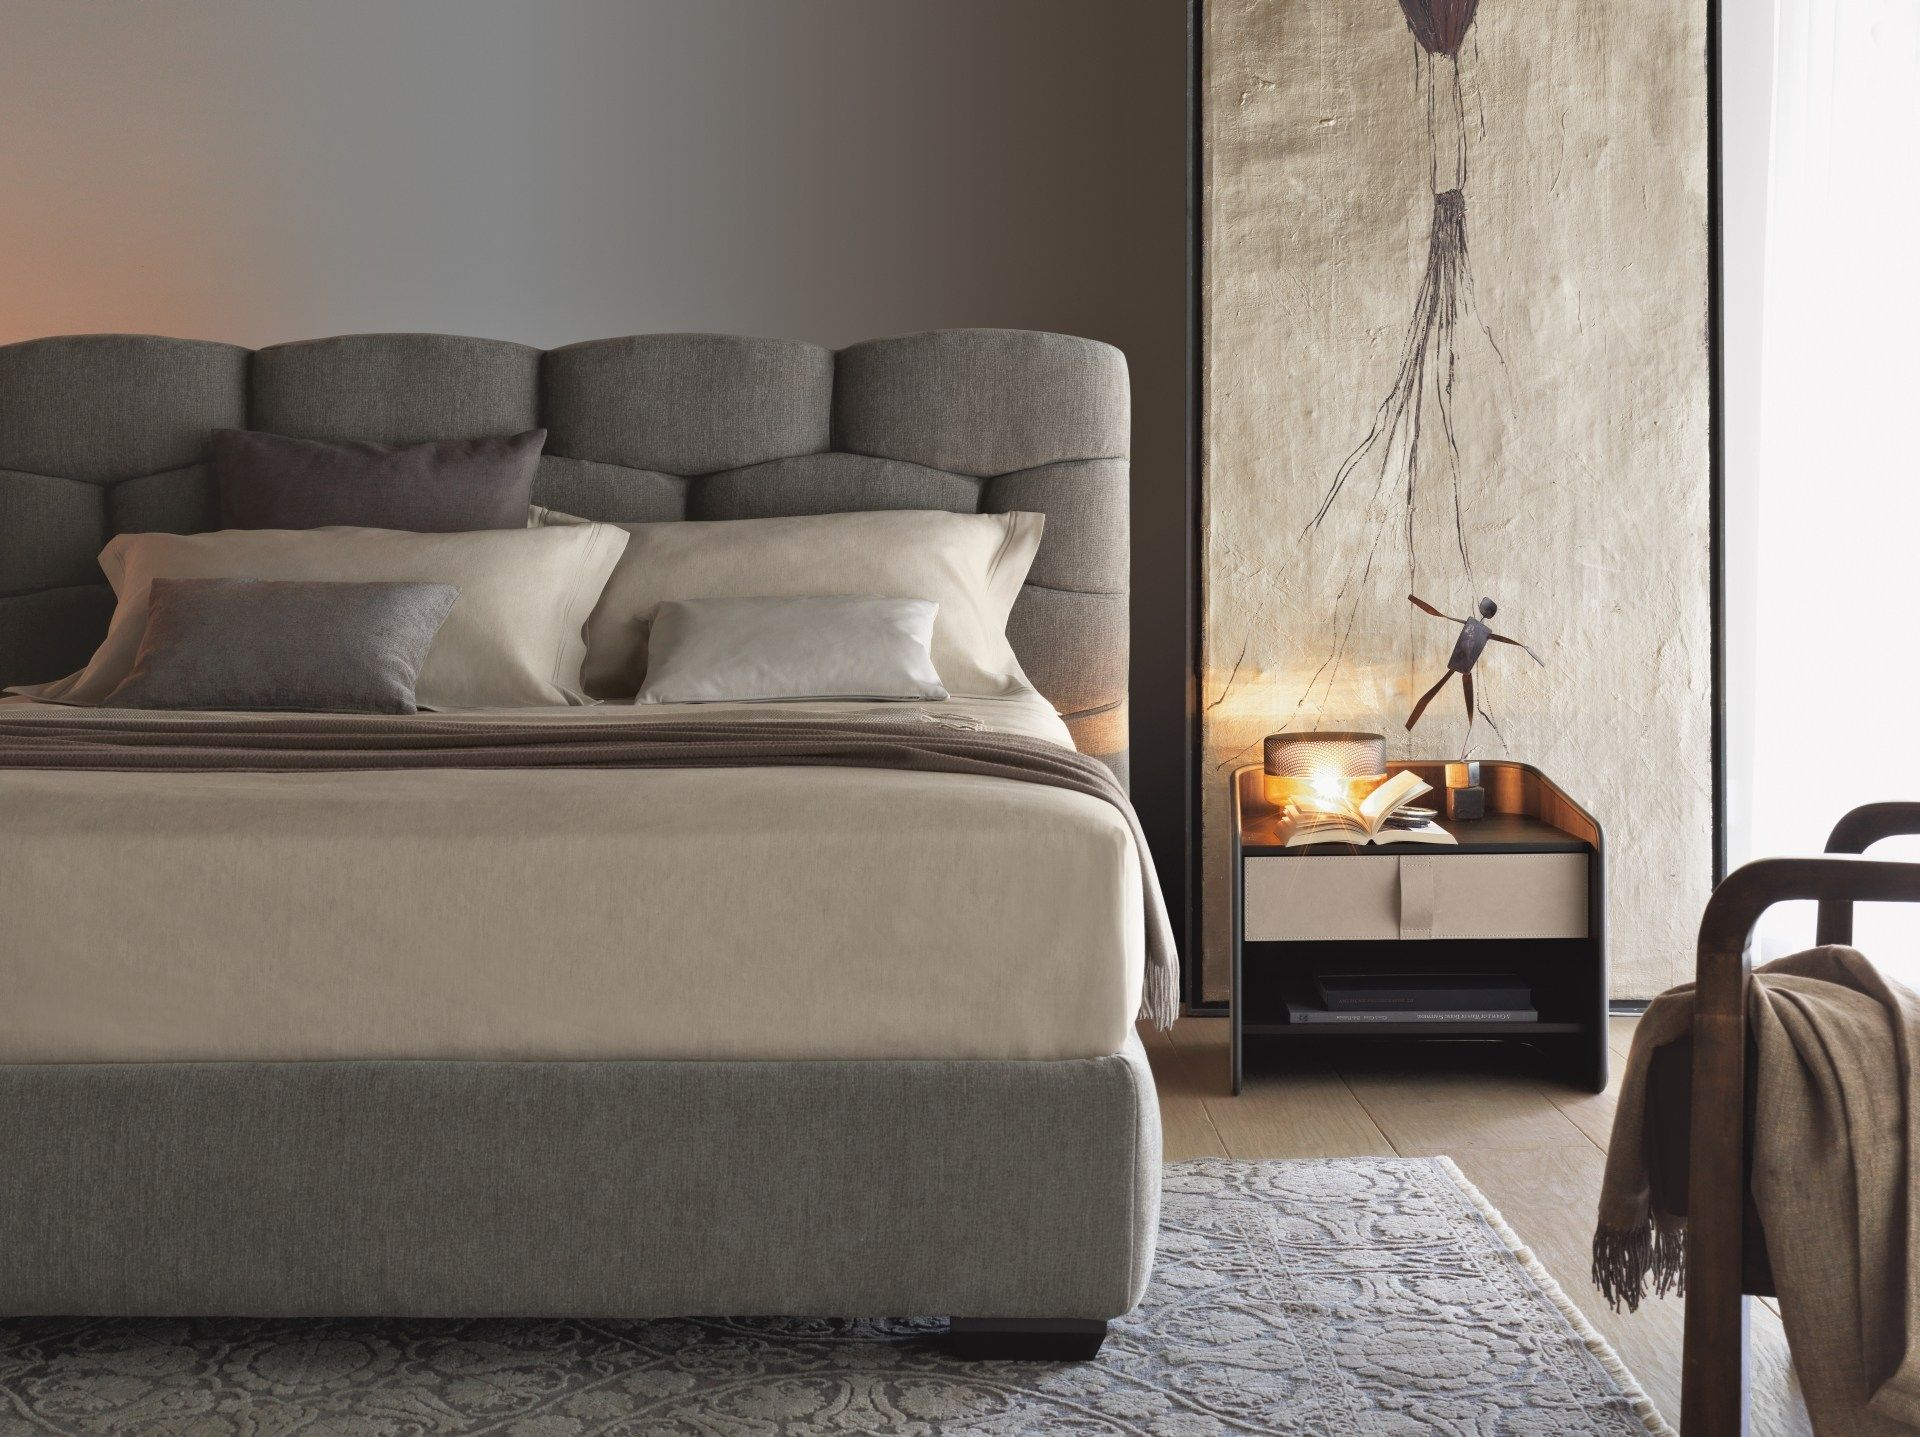 MAJAL Double bed by Flou design Carlo Colombo | Dallas Hotel Beds ...